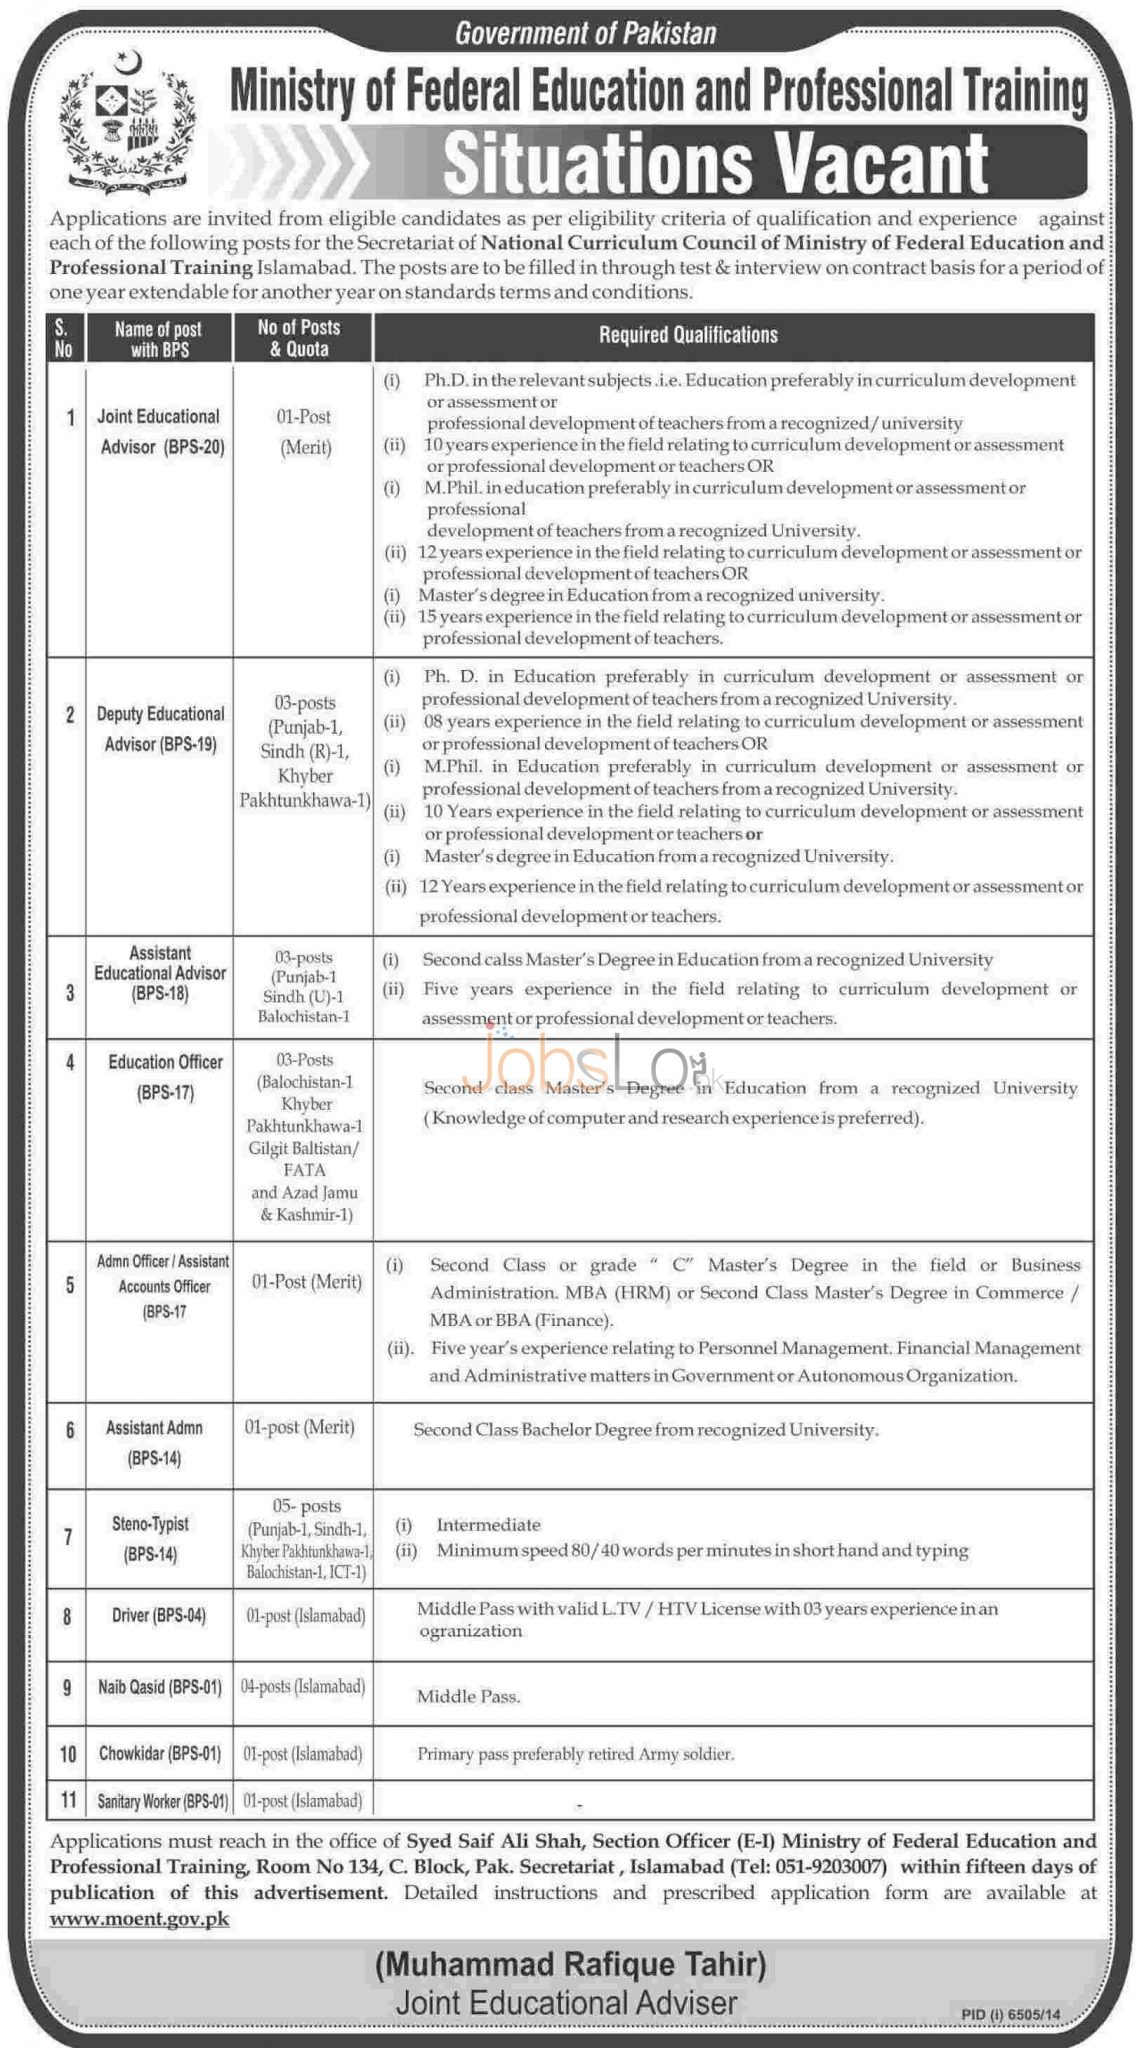 Ministry of Federal Education and Professional Training Jobs